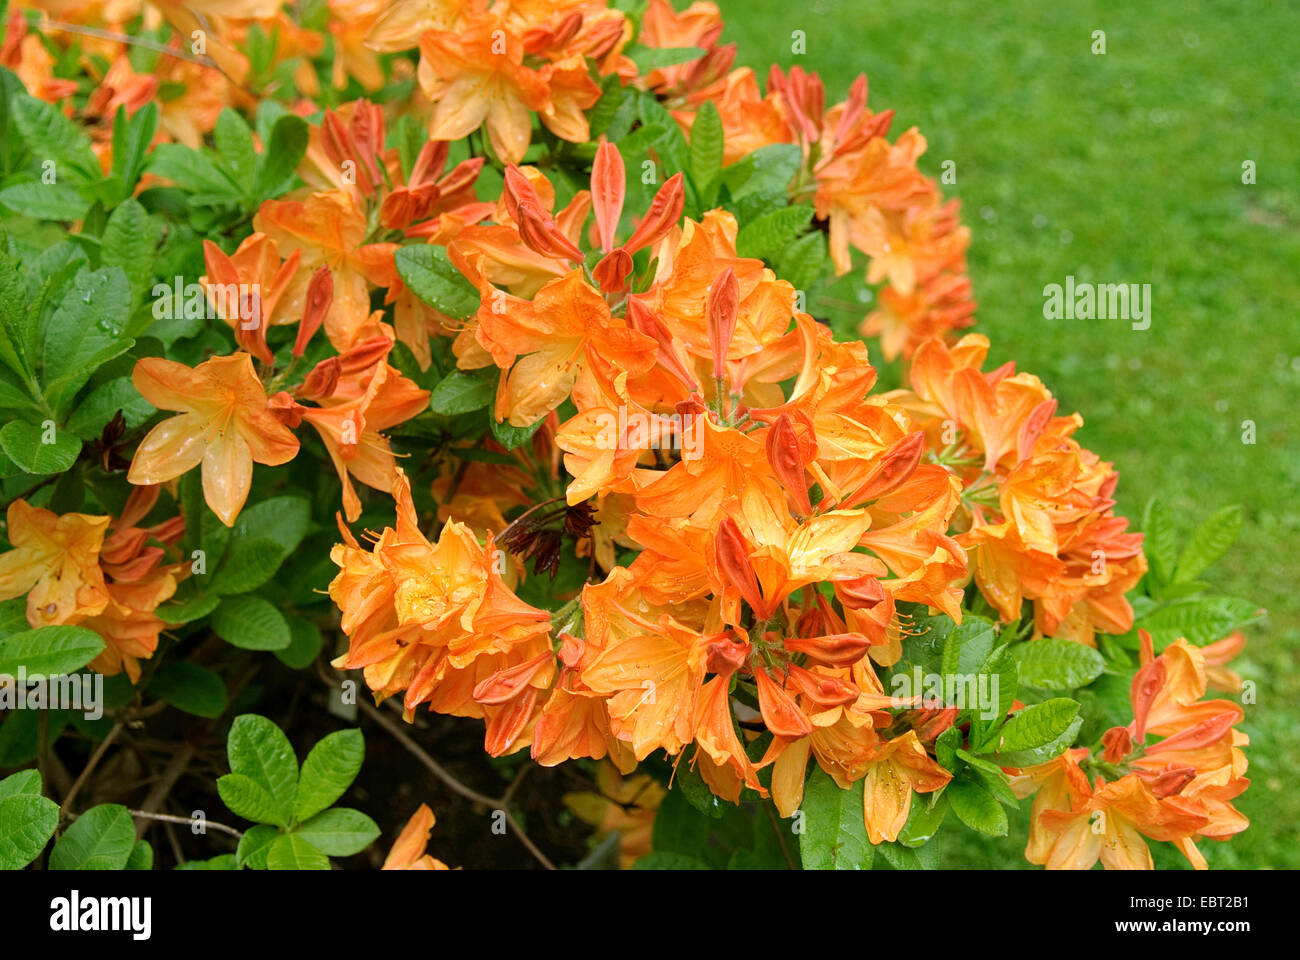 rhododendron (Rhododendron luteum 'Hortulanus H. Witte', Rhododendron luteum Hortulanus H. Witte), cultivar - Stock Image